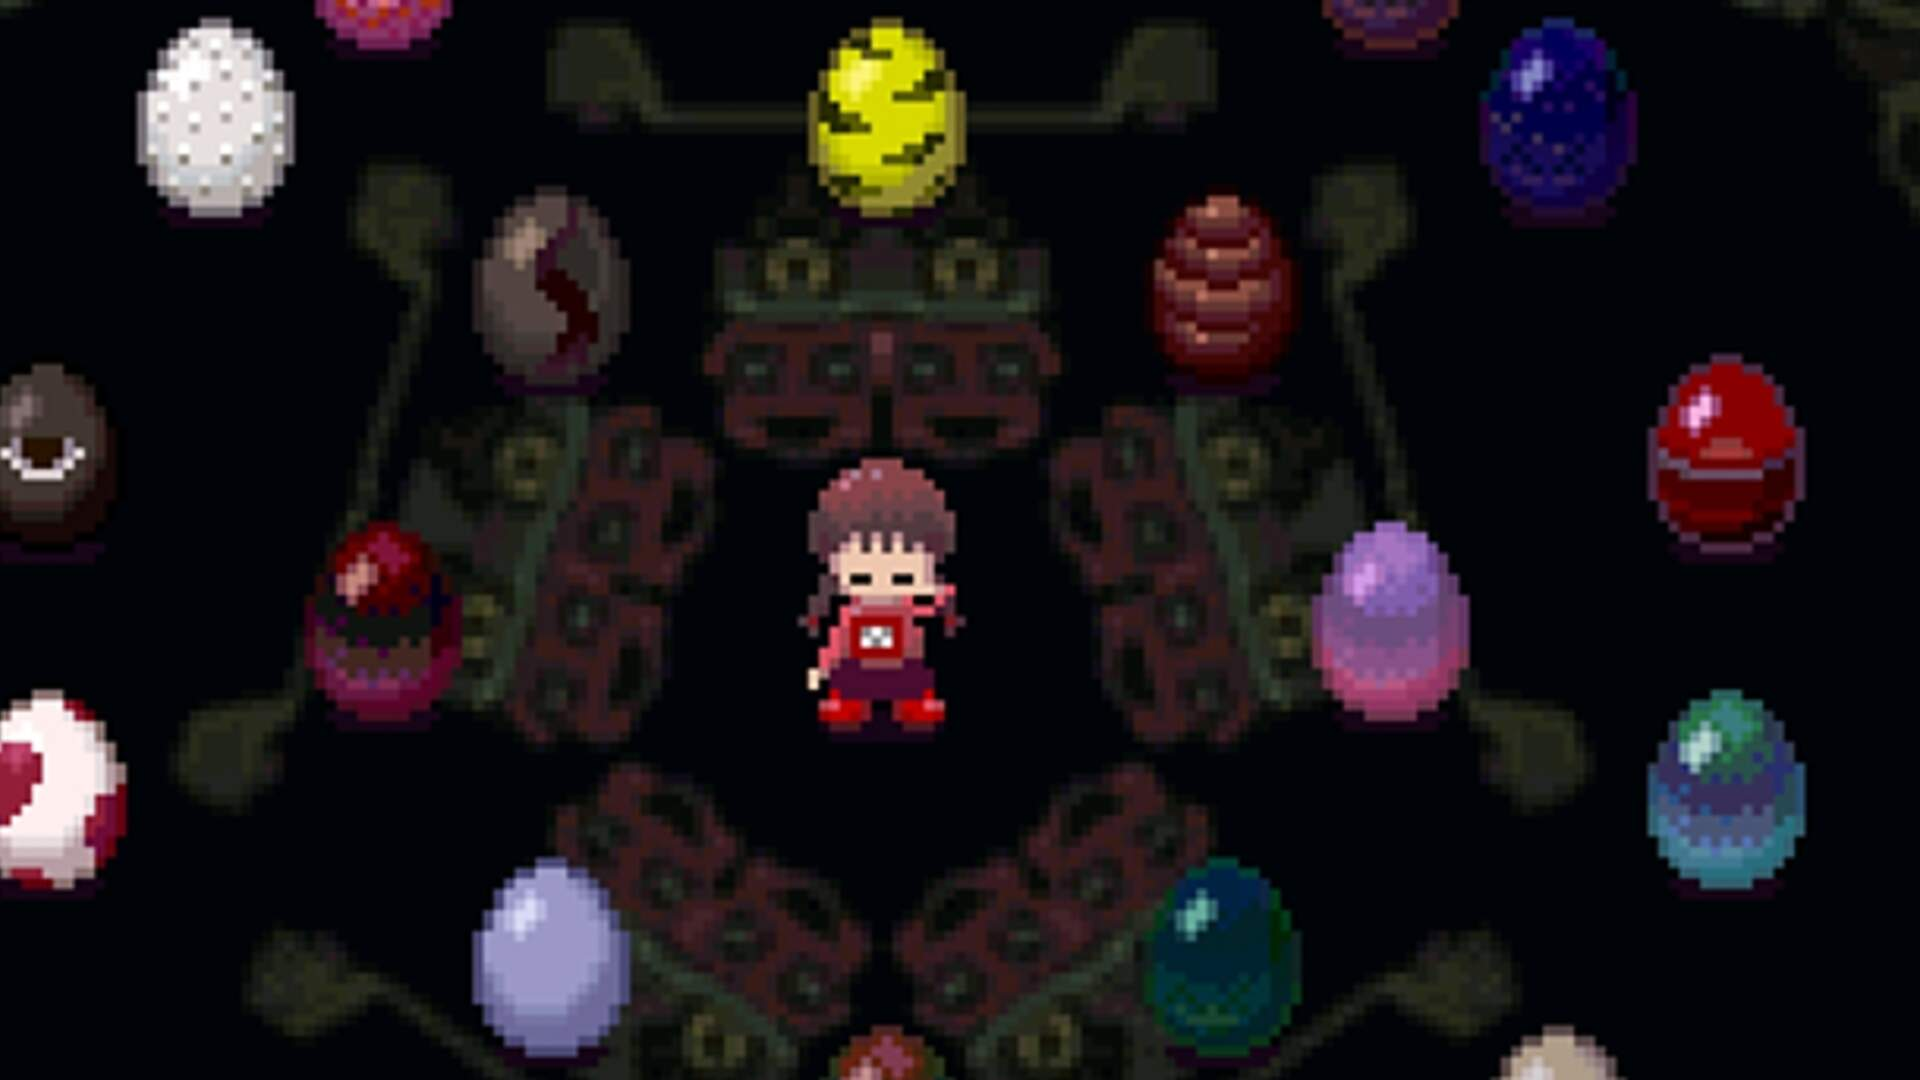 Over a Decade Later, Yume Nikki Wakes Up on Steam